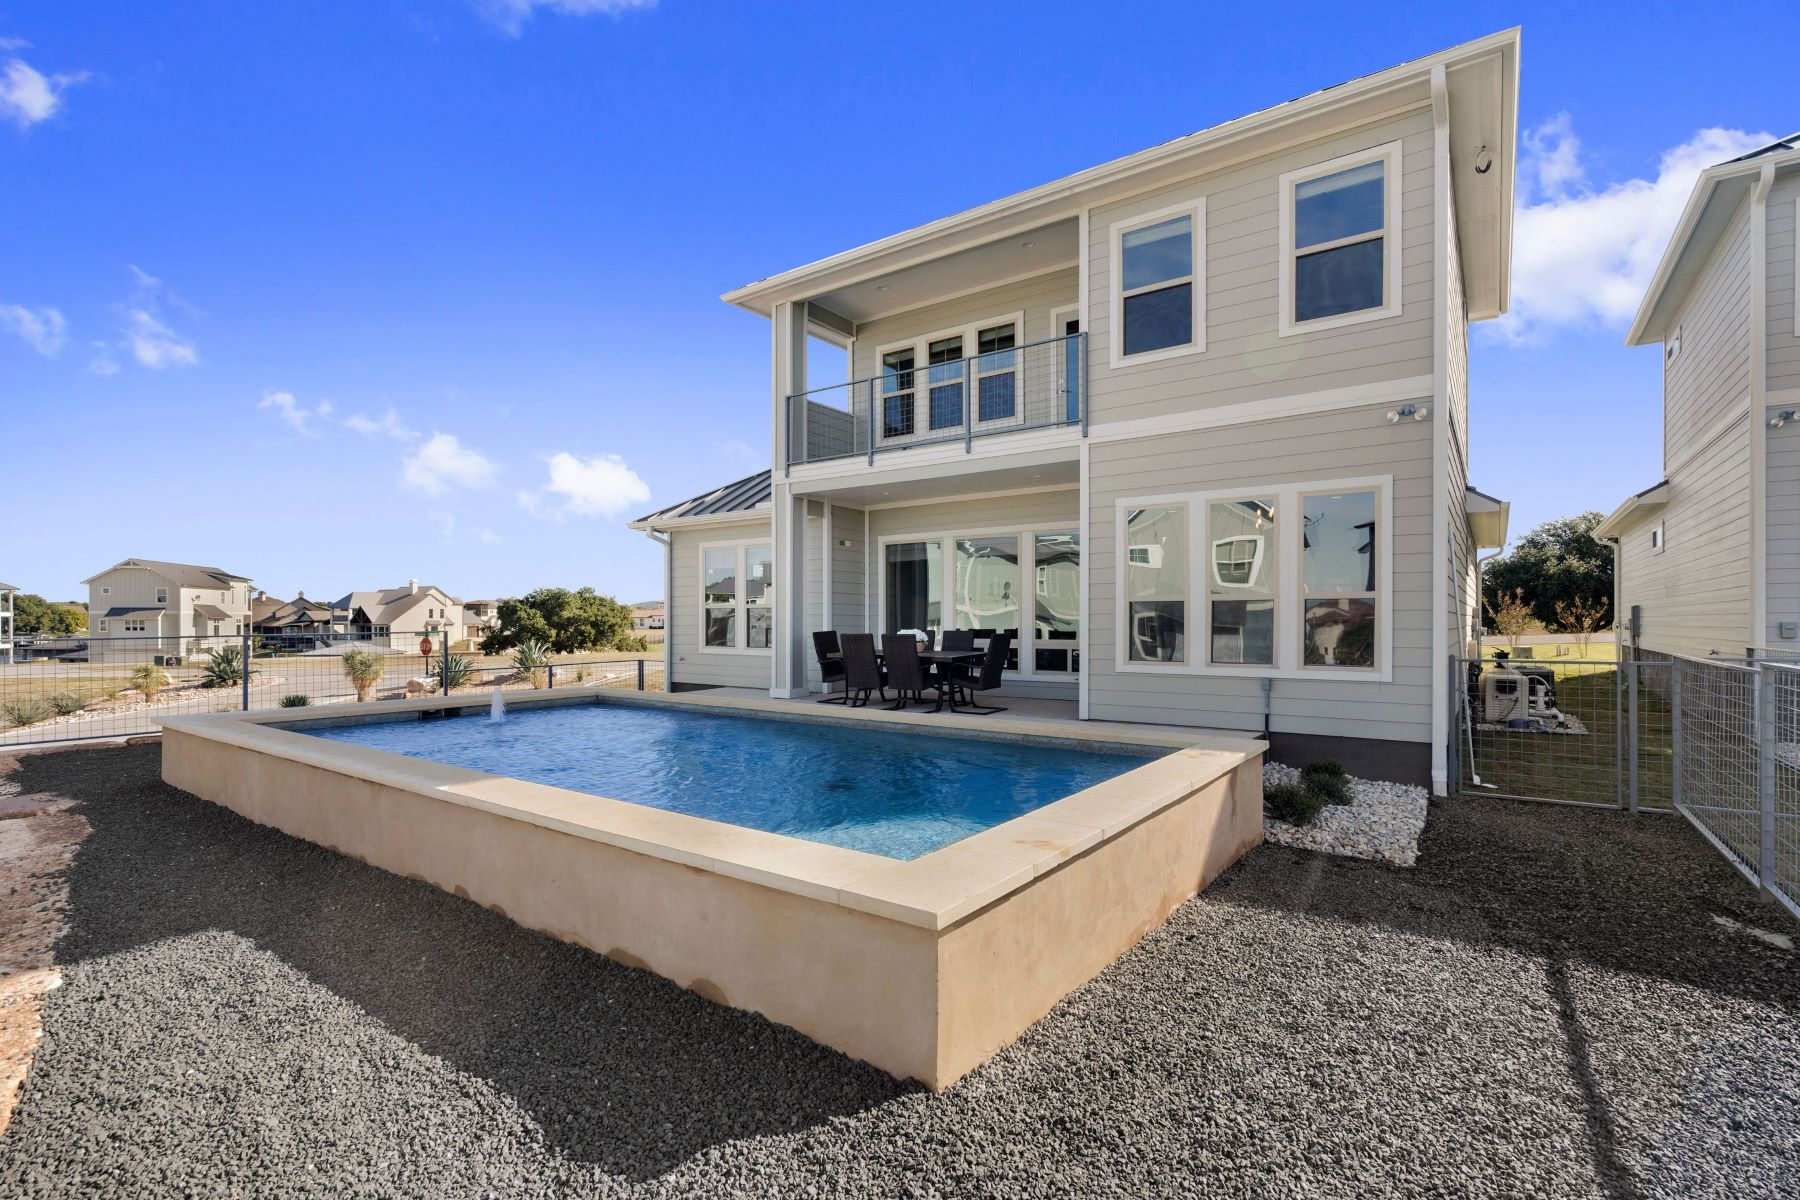 Single Family Homes for Sale at Stylish new construction in Clearwater Harbor at Lake LBJ 204 Archview Lane Kingsland, Texas 78639 United States